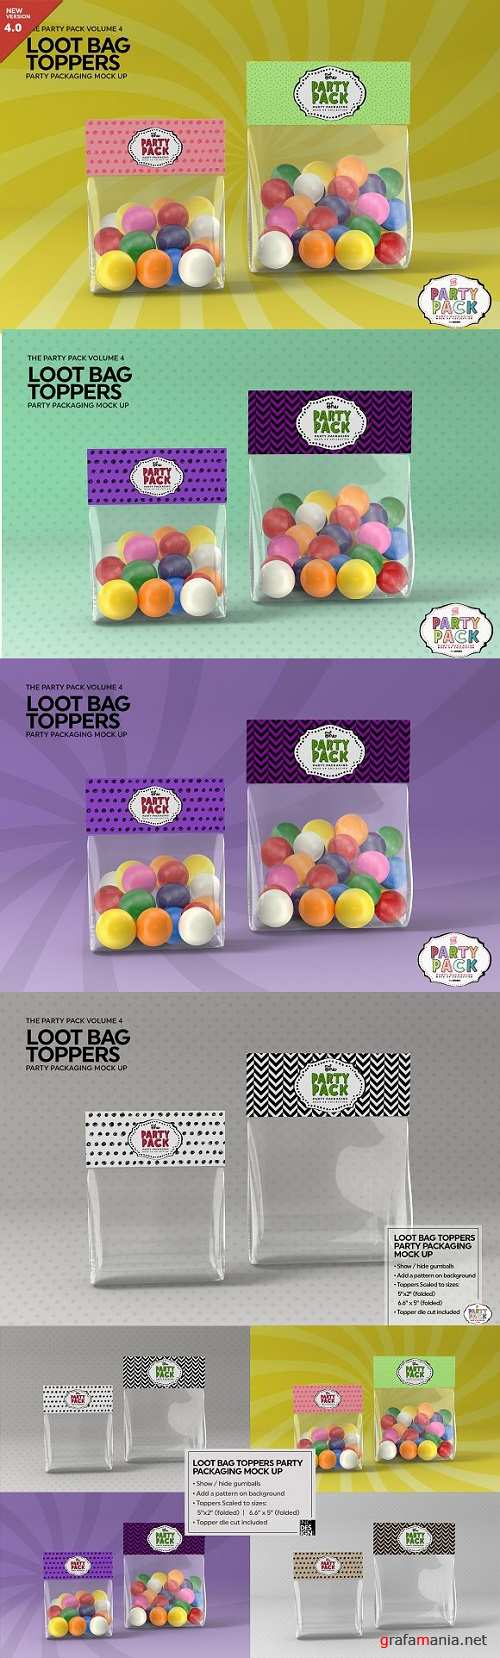 Loot Bag Packaging Mock Up - 2198508